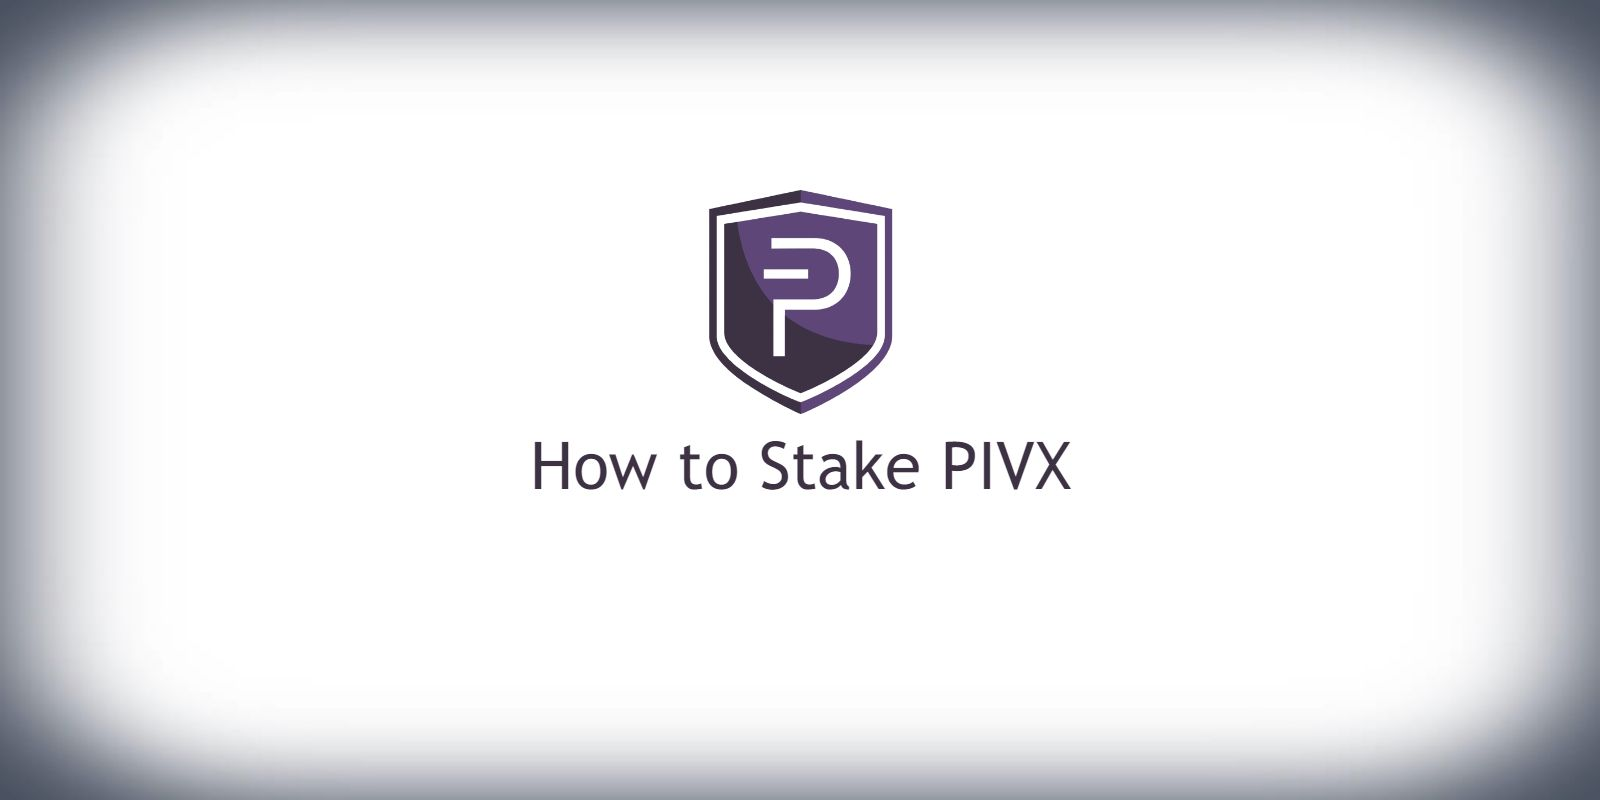 how to buy pivx cryptocurrency